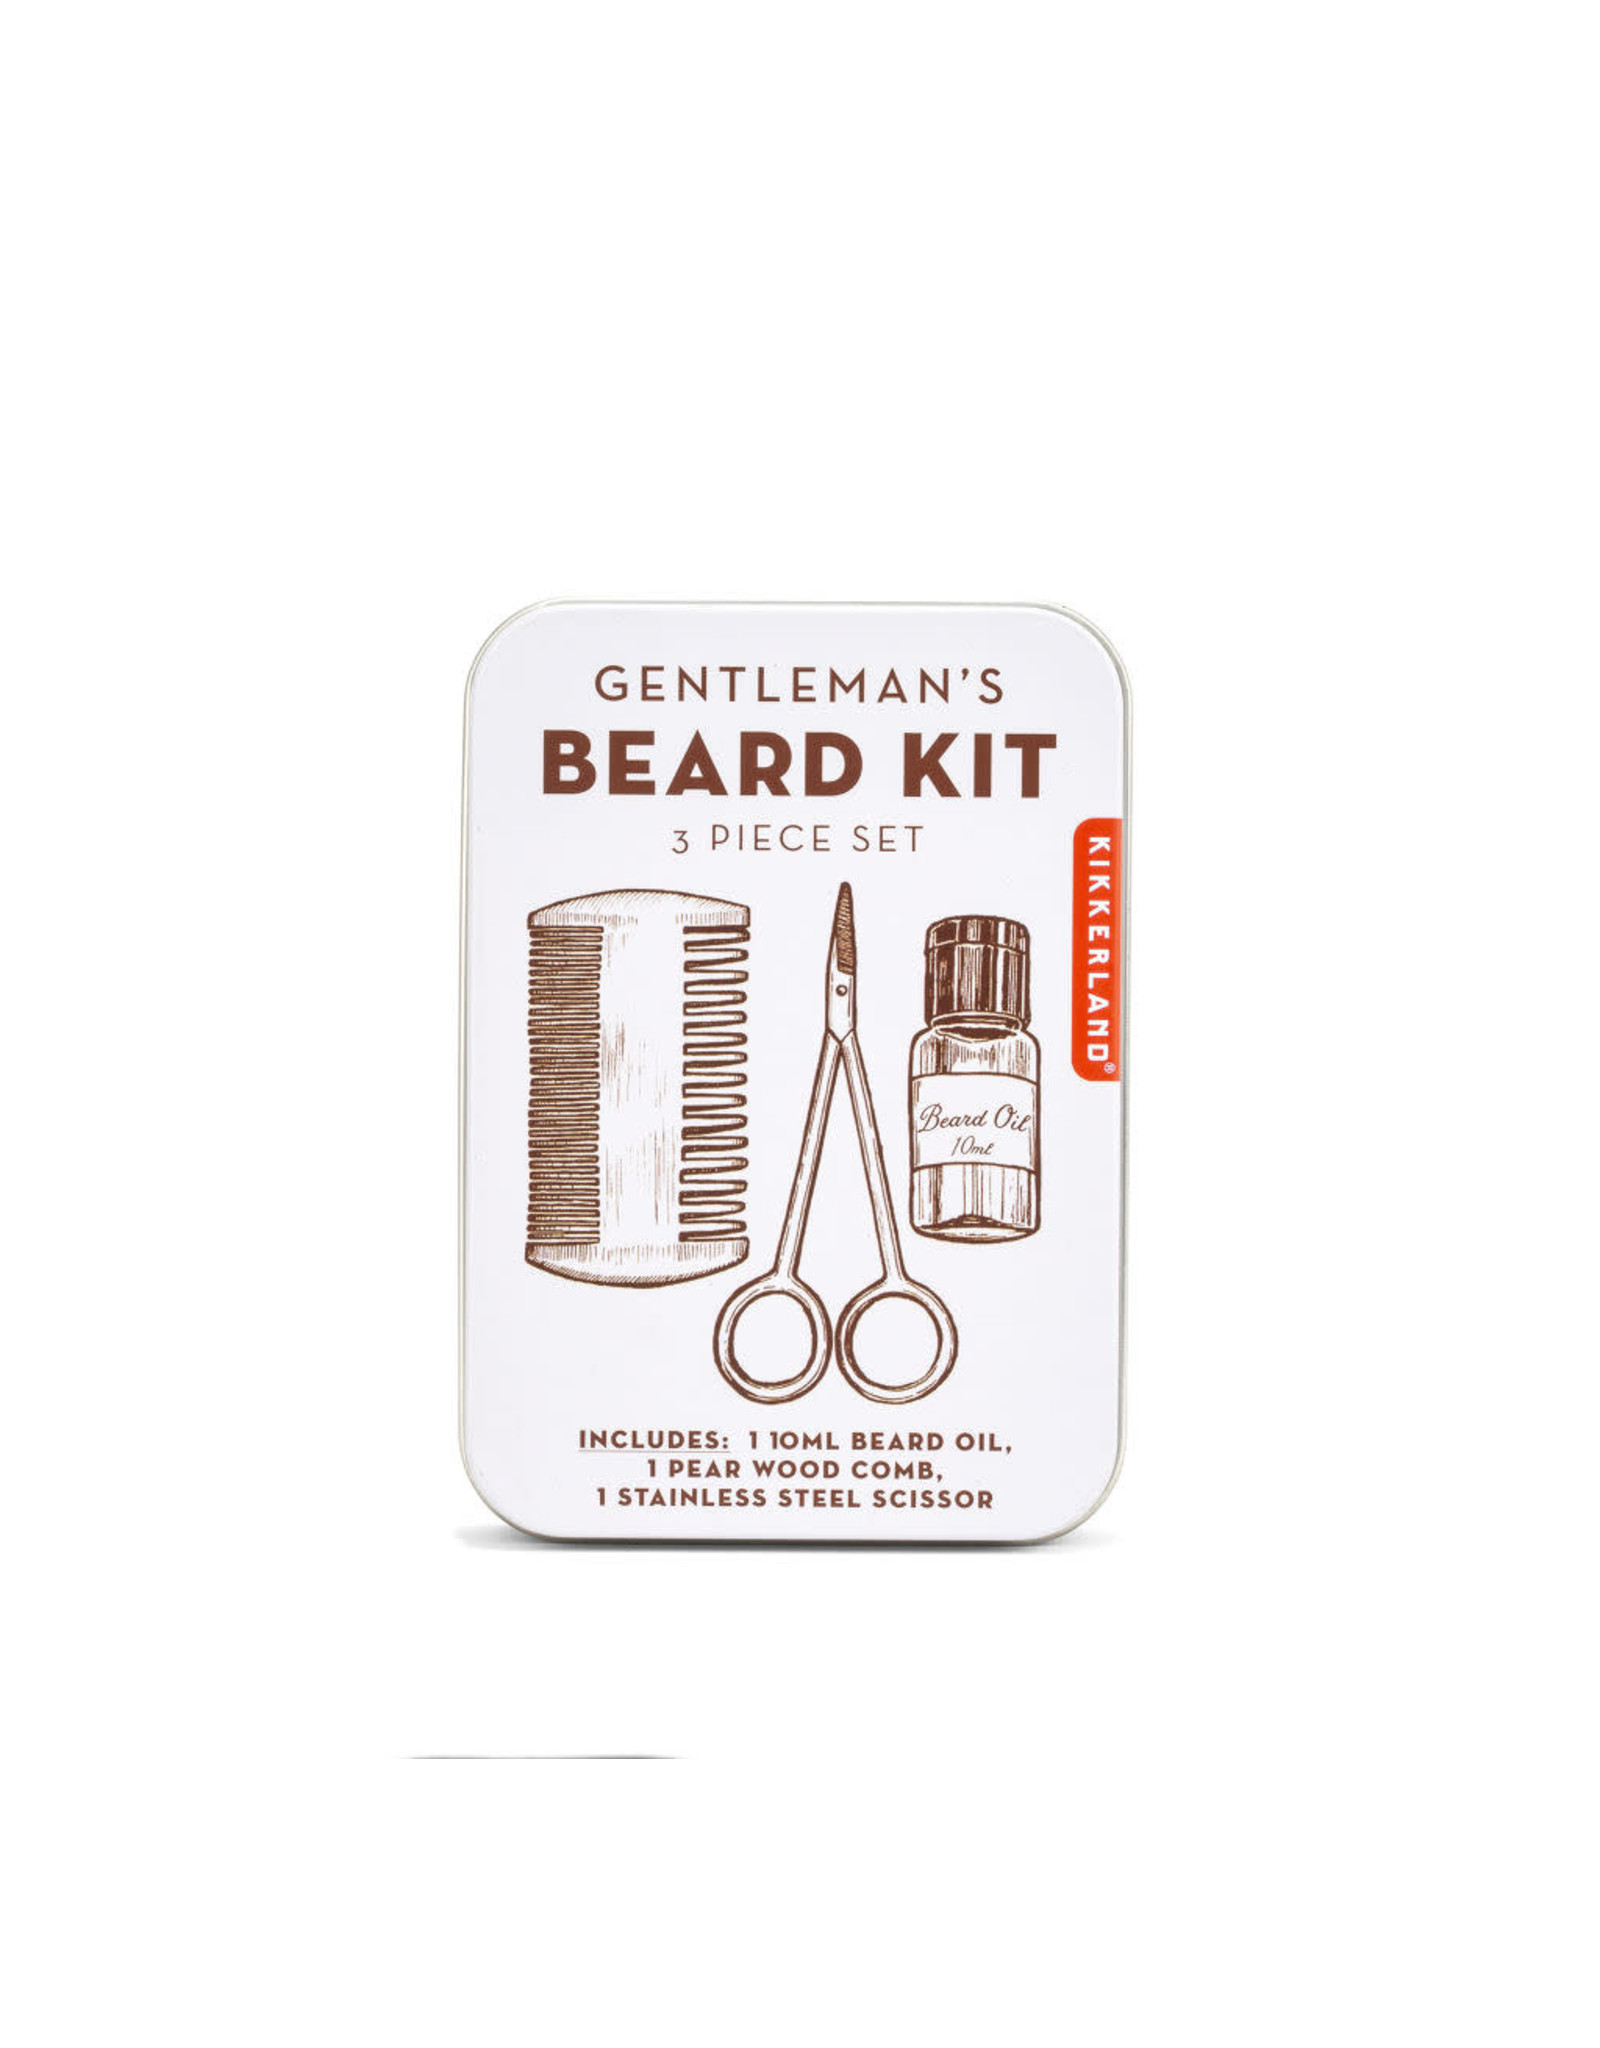 3 piece set for grooming your beard